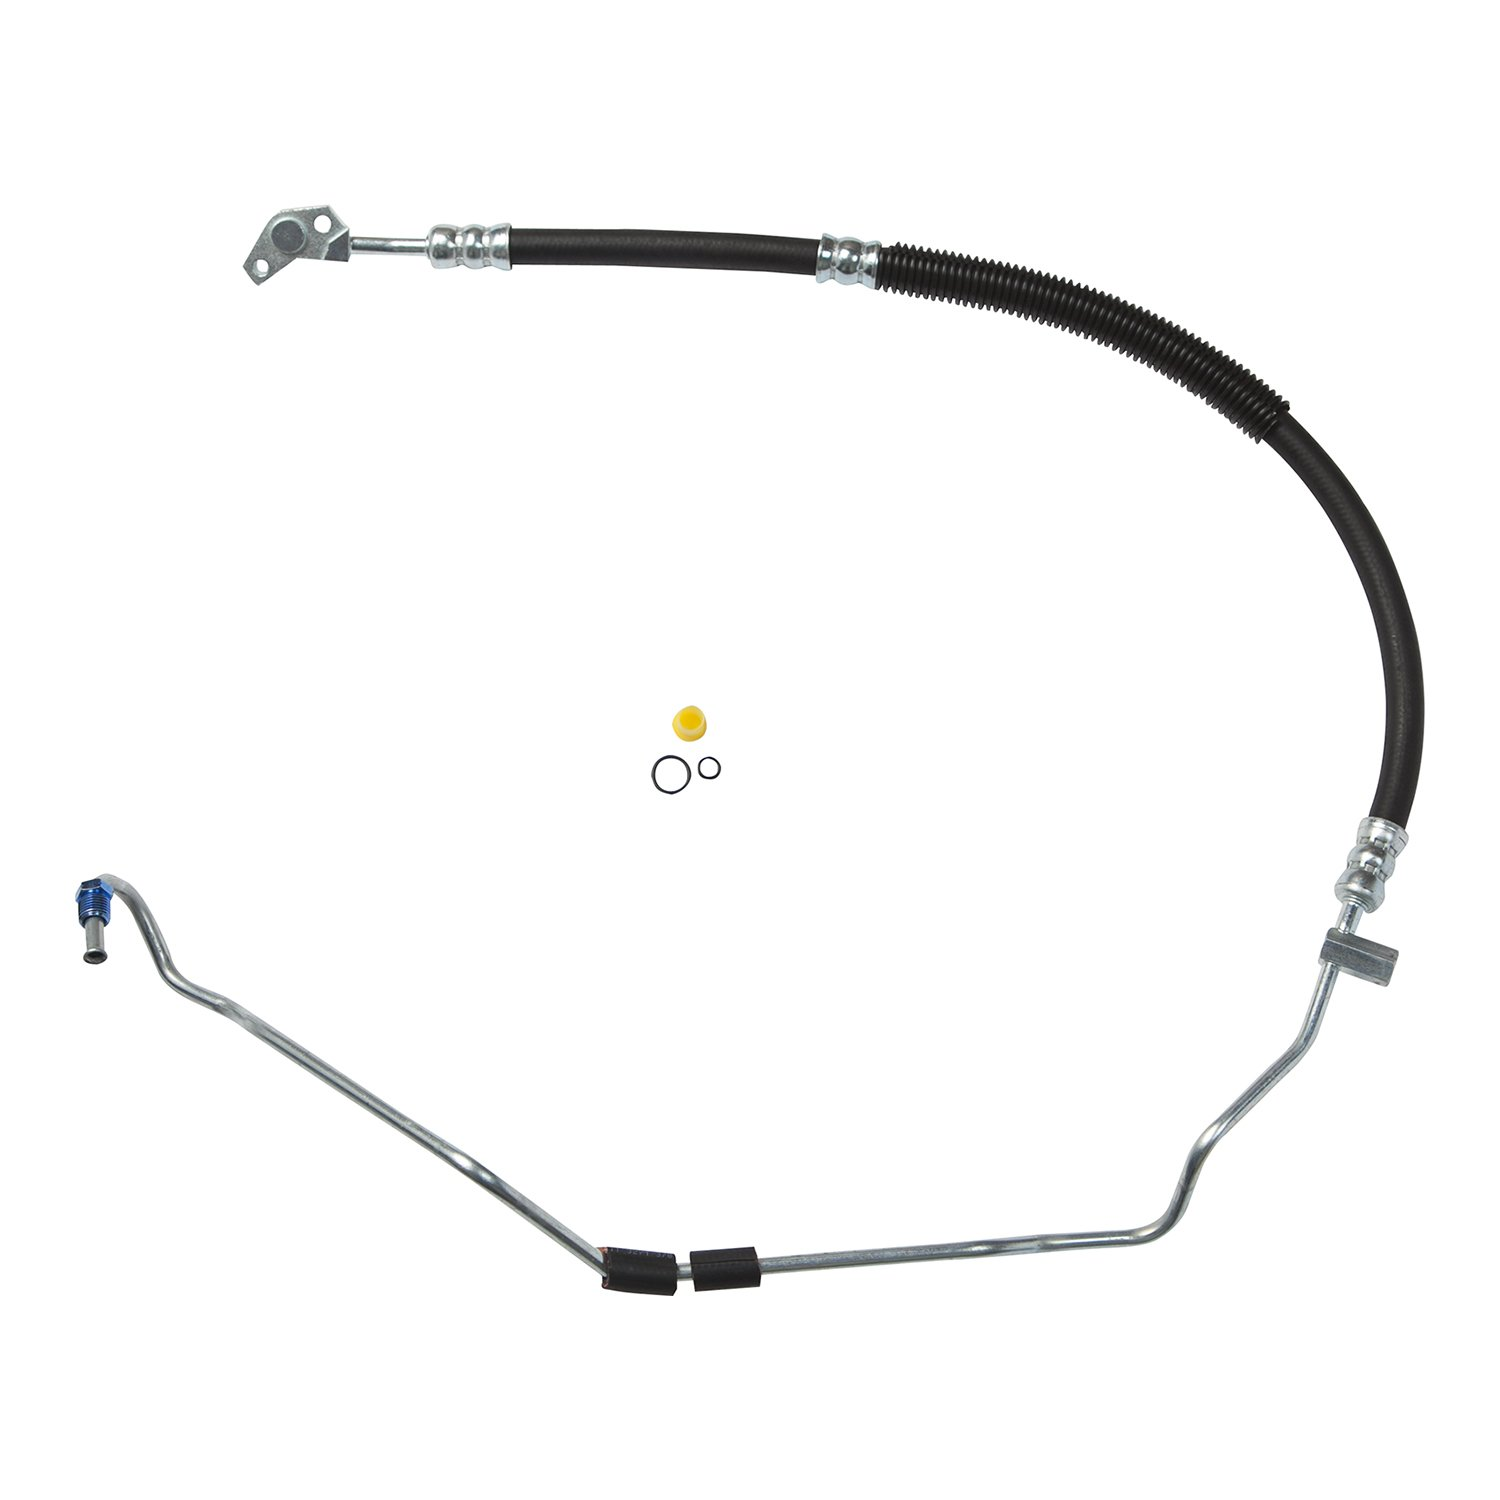 Parts Master 92131 Power Steering Pressure Hose by Parts Master